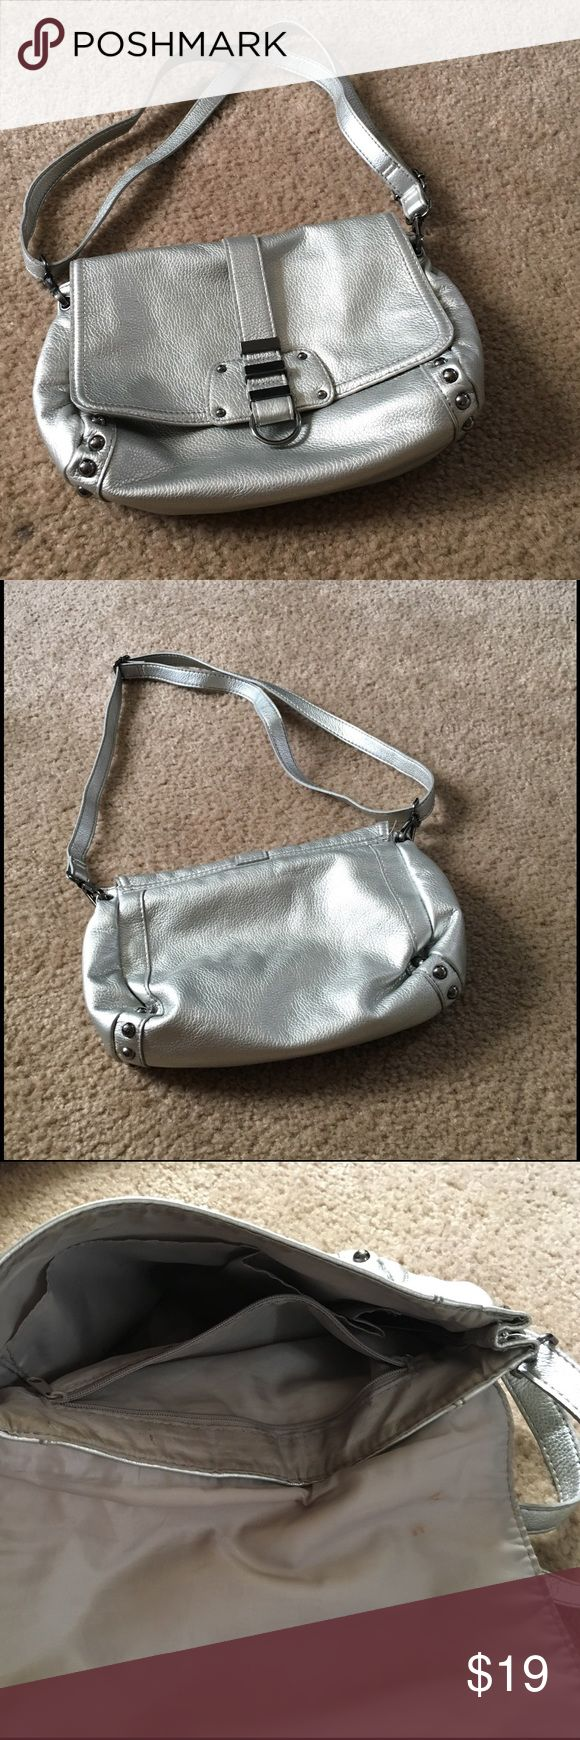 Metallic crossbody Used it quite a bit when metallic bags were first on trend. Good condition except for makeup stain inside. (See picture) H&M Bags Crossbody Bags